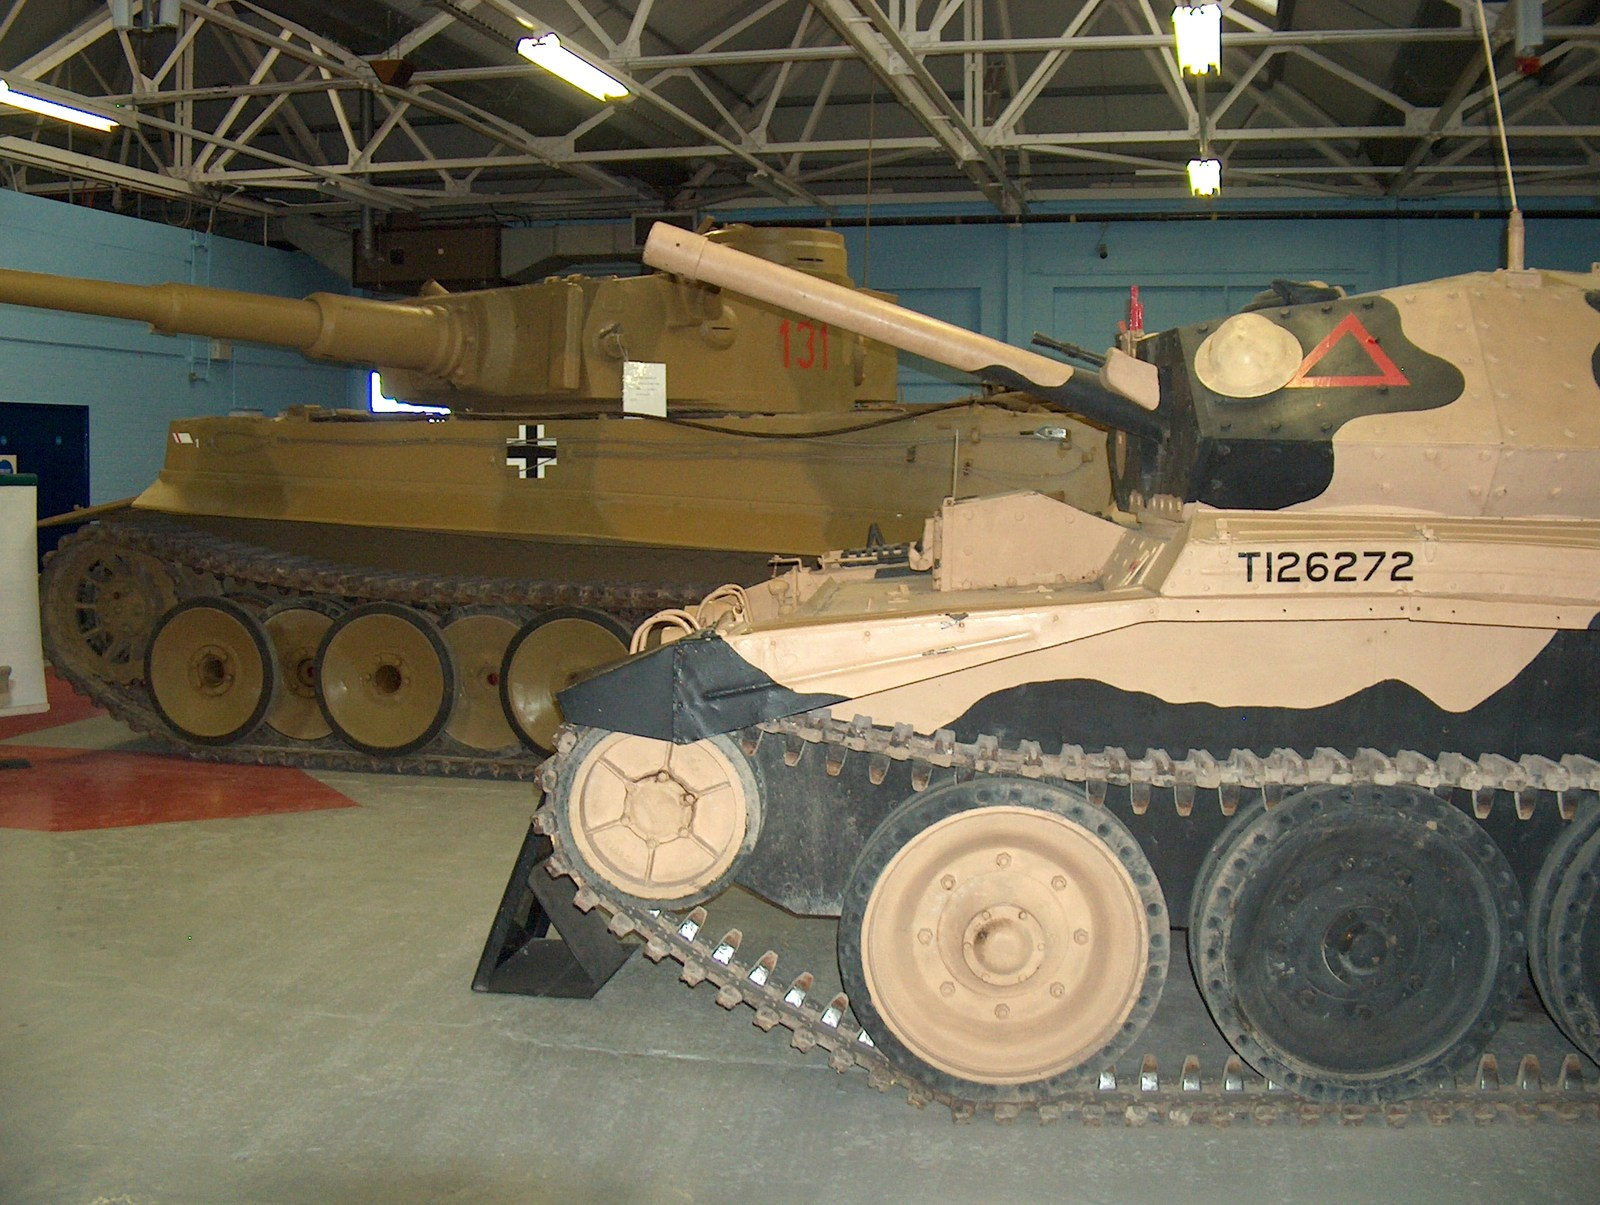 Tiger 131 & Crusader